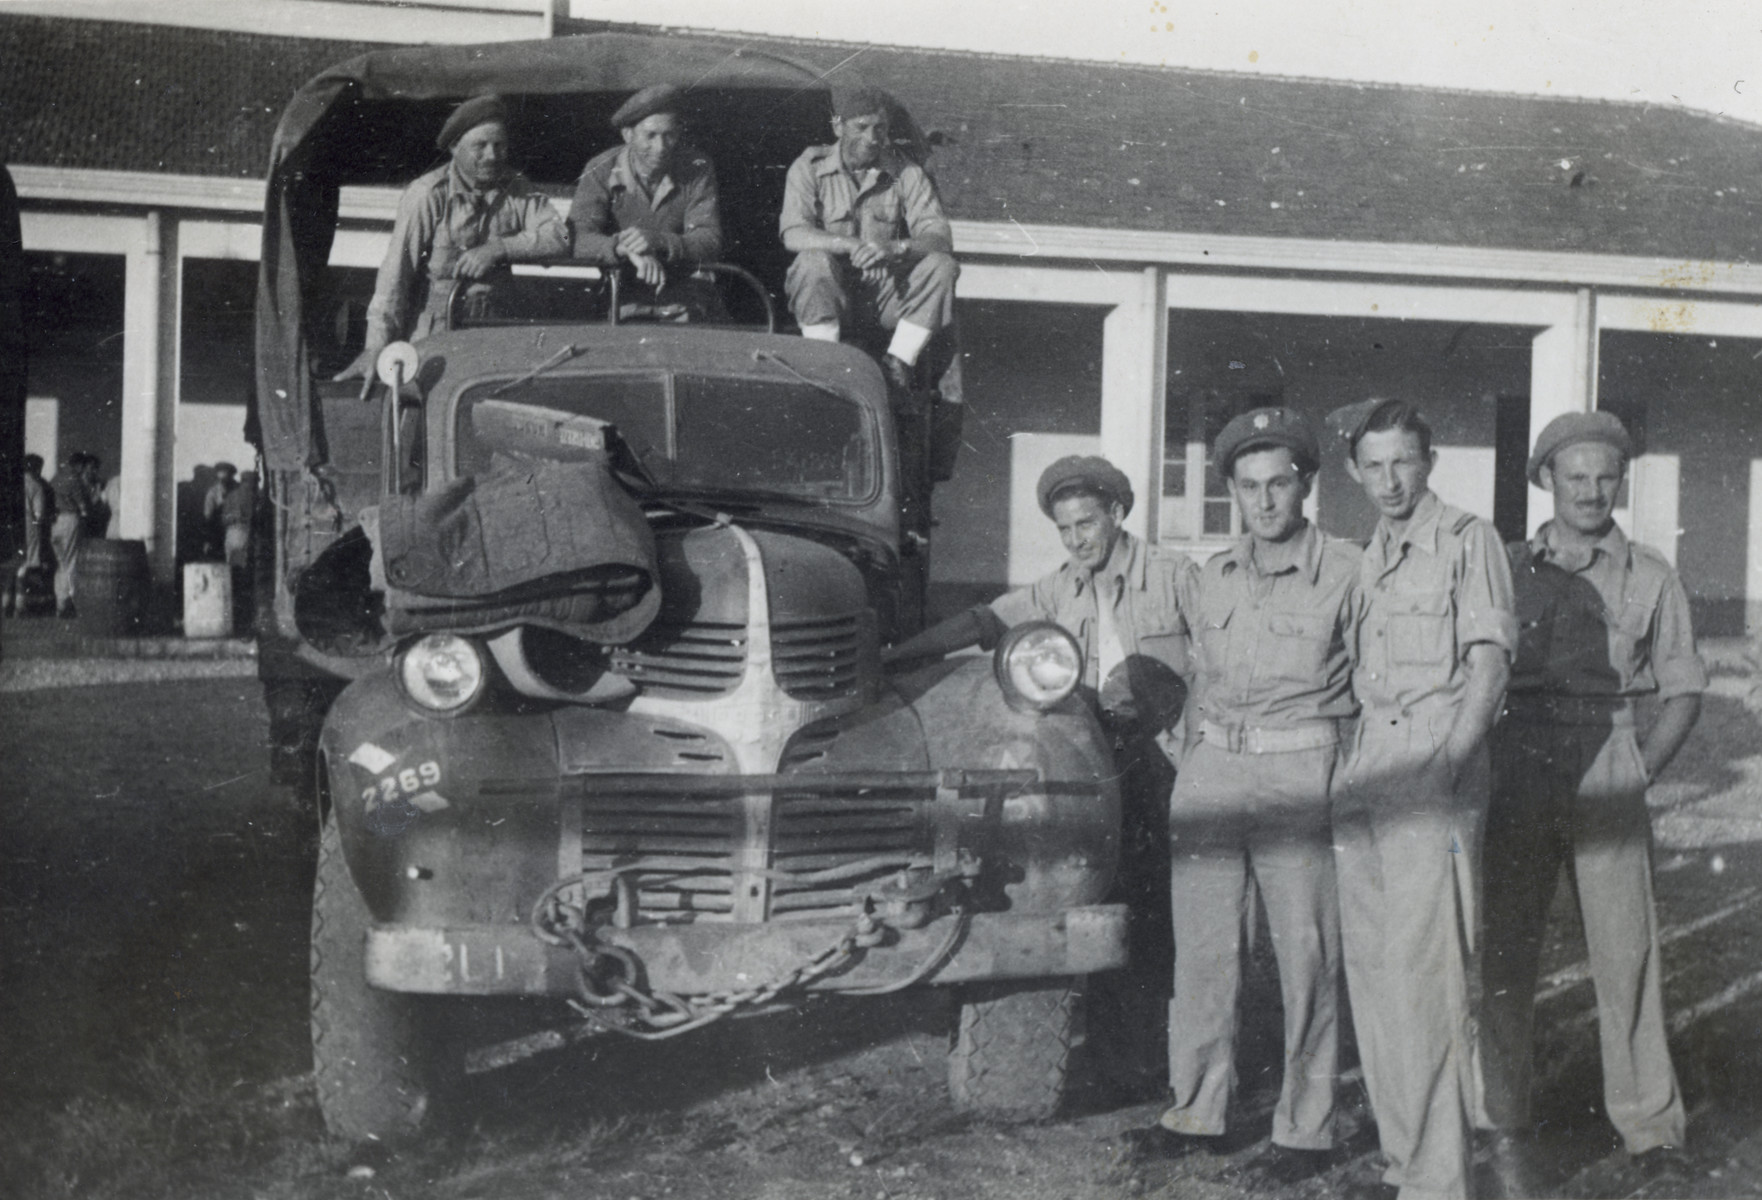 Group portrait of soldiers in the Jewish Brigade posing next to a truck in Italy.  Among those in the unit is Yaakov (Bandi) Sigmund (who took the snapshot).